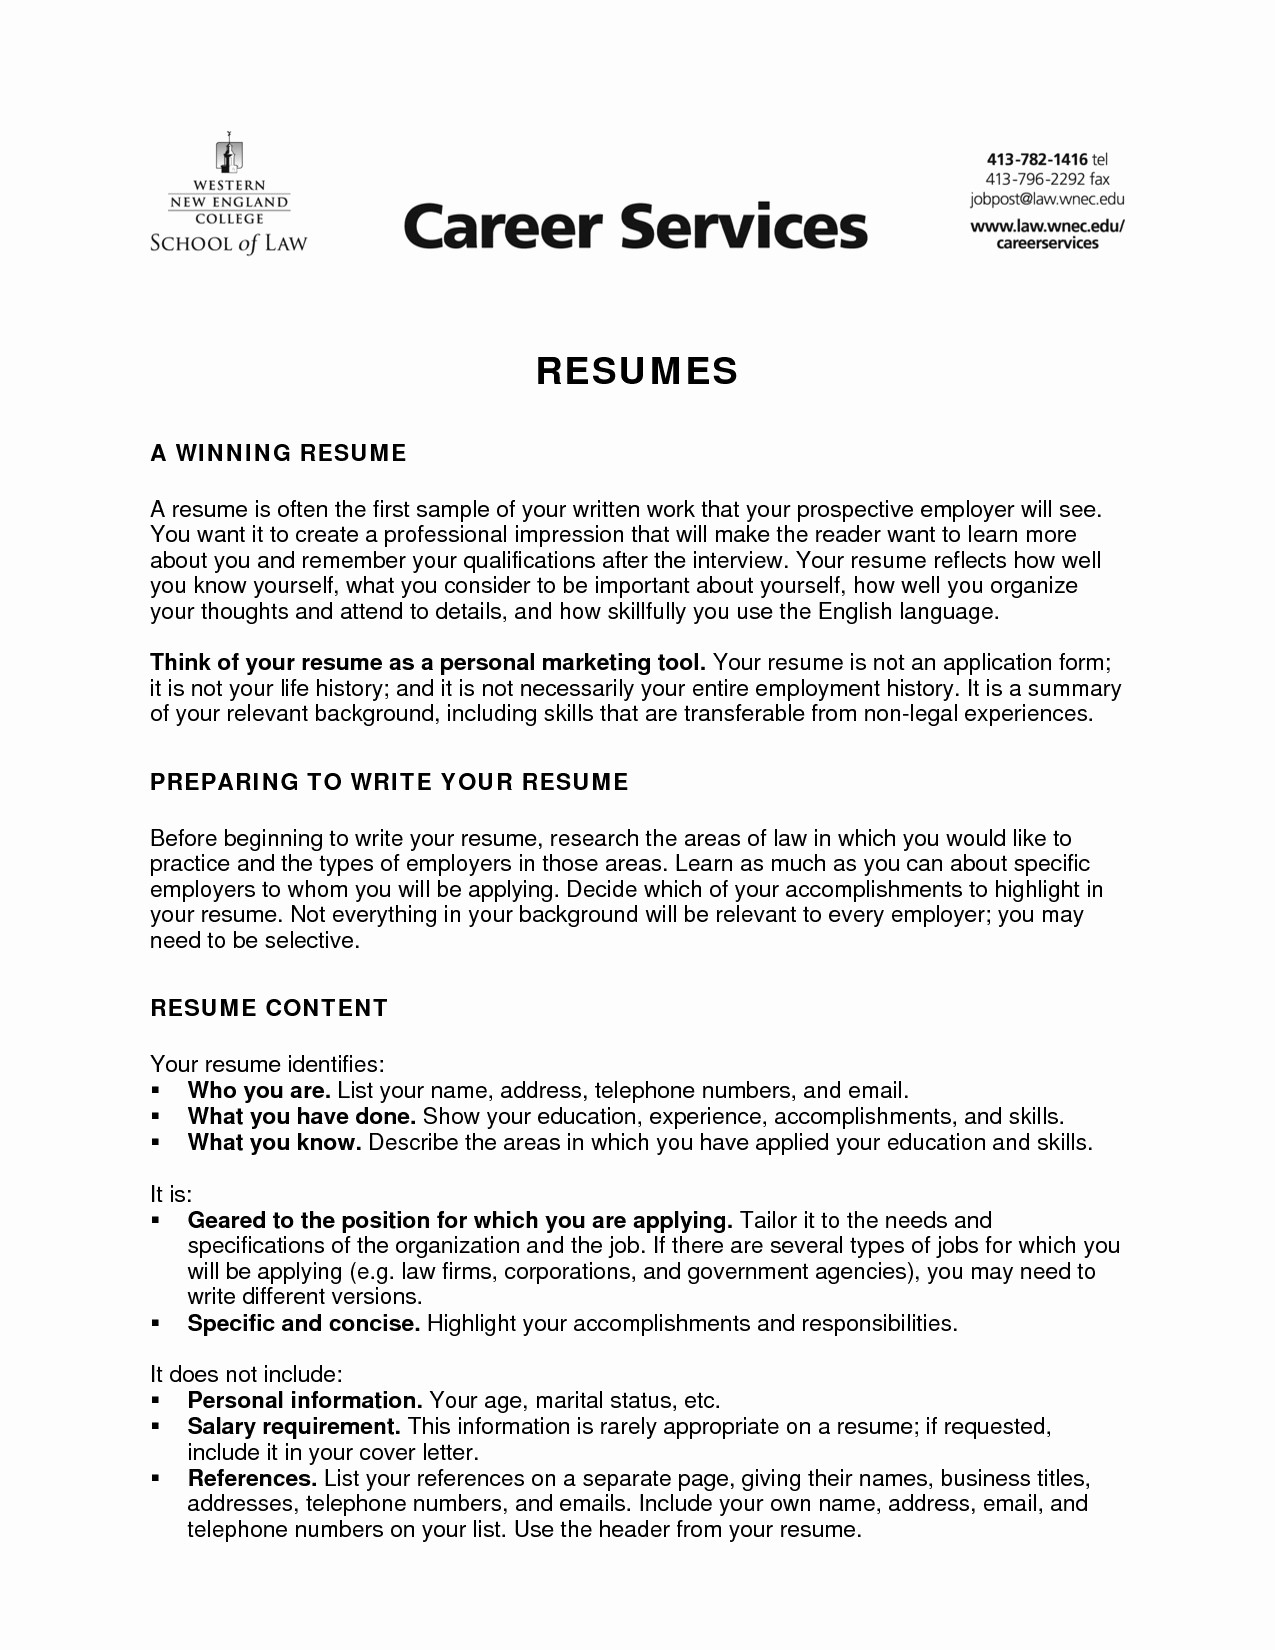 Cover letter with salary requirements template samples for Adding salary requirements to cover letter